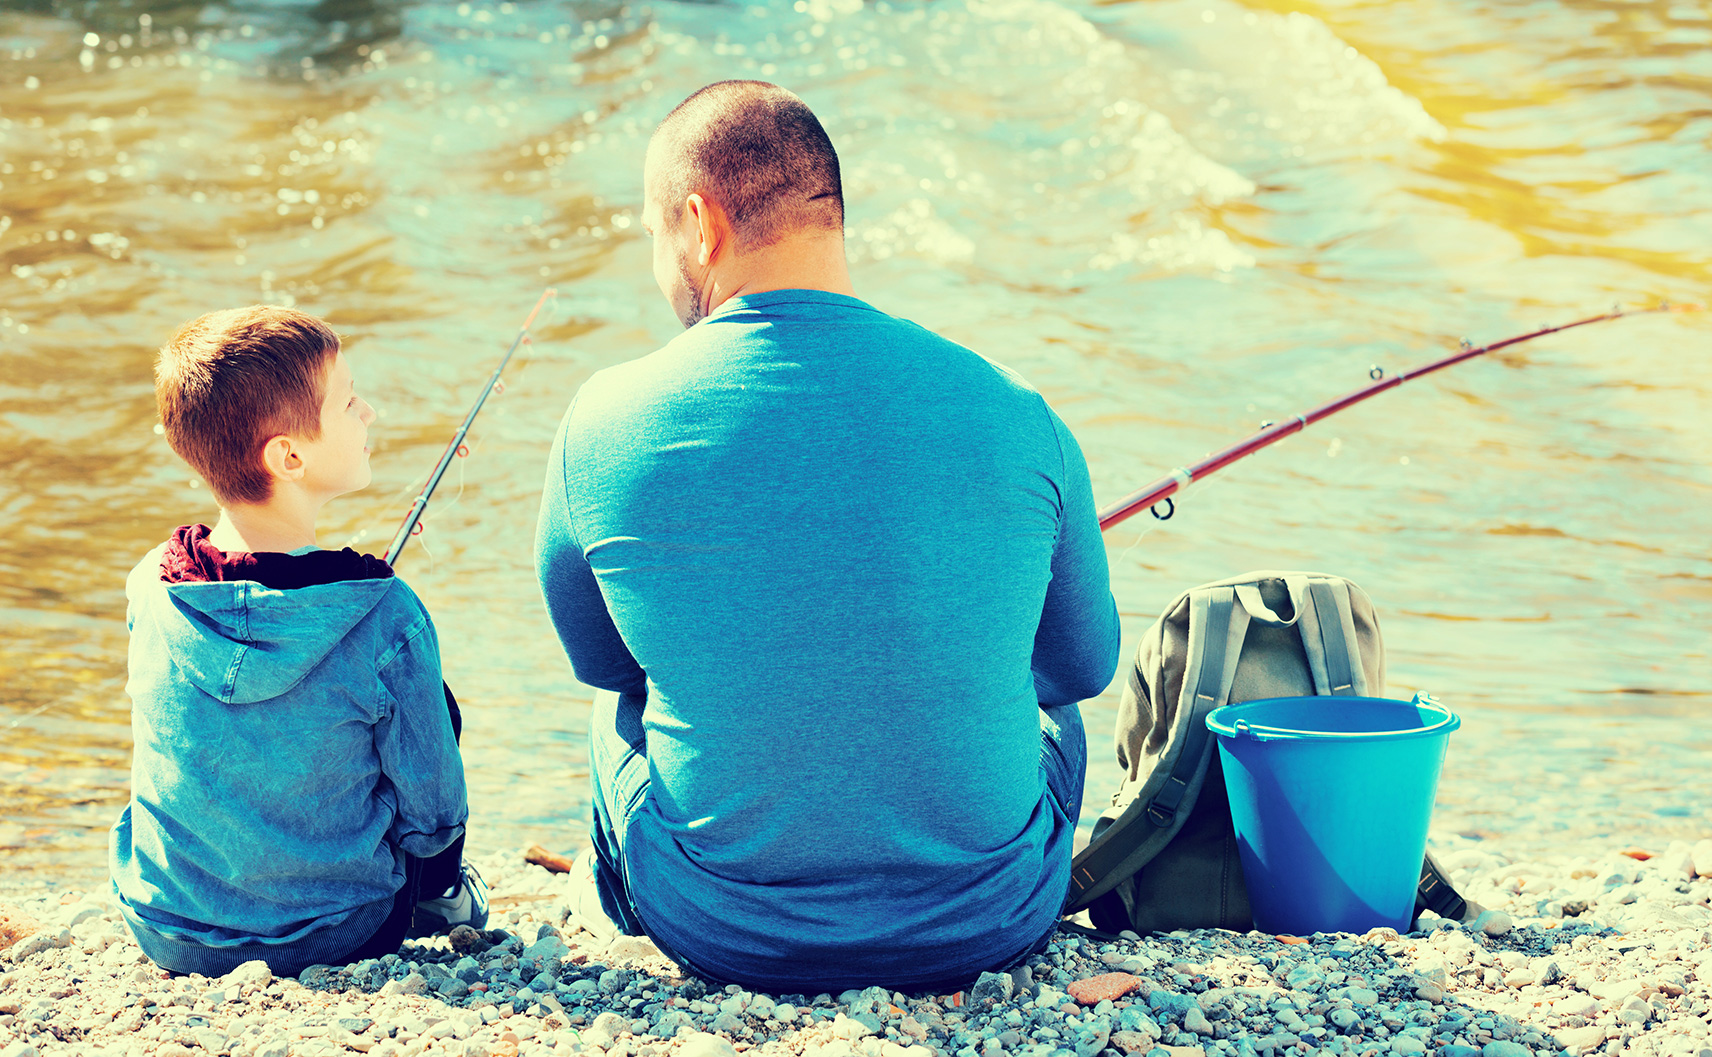 Father & son bonding over fishing